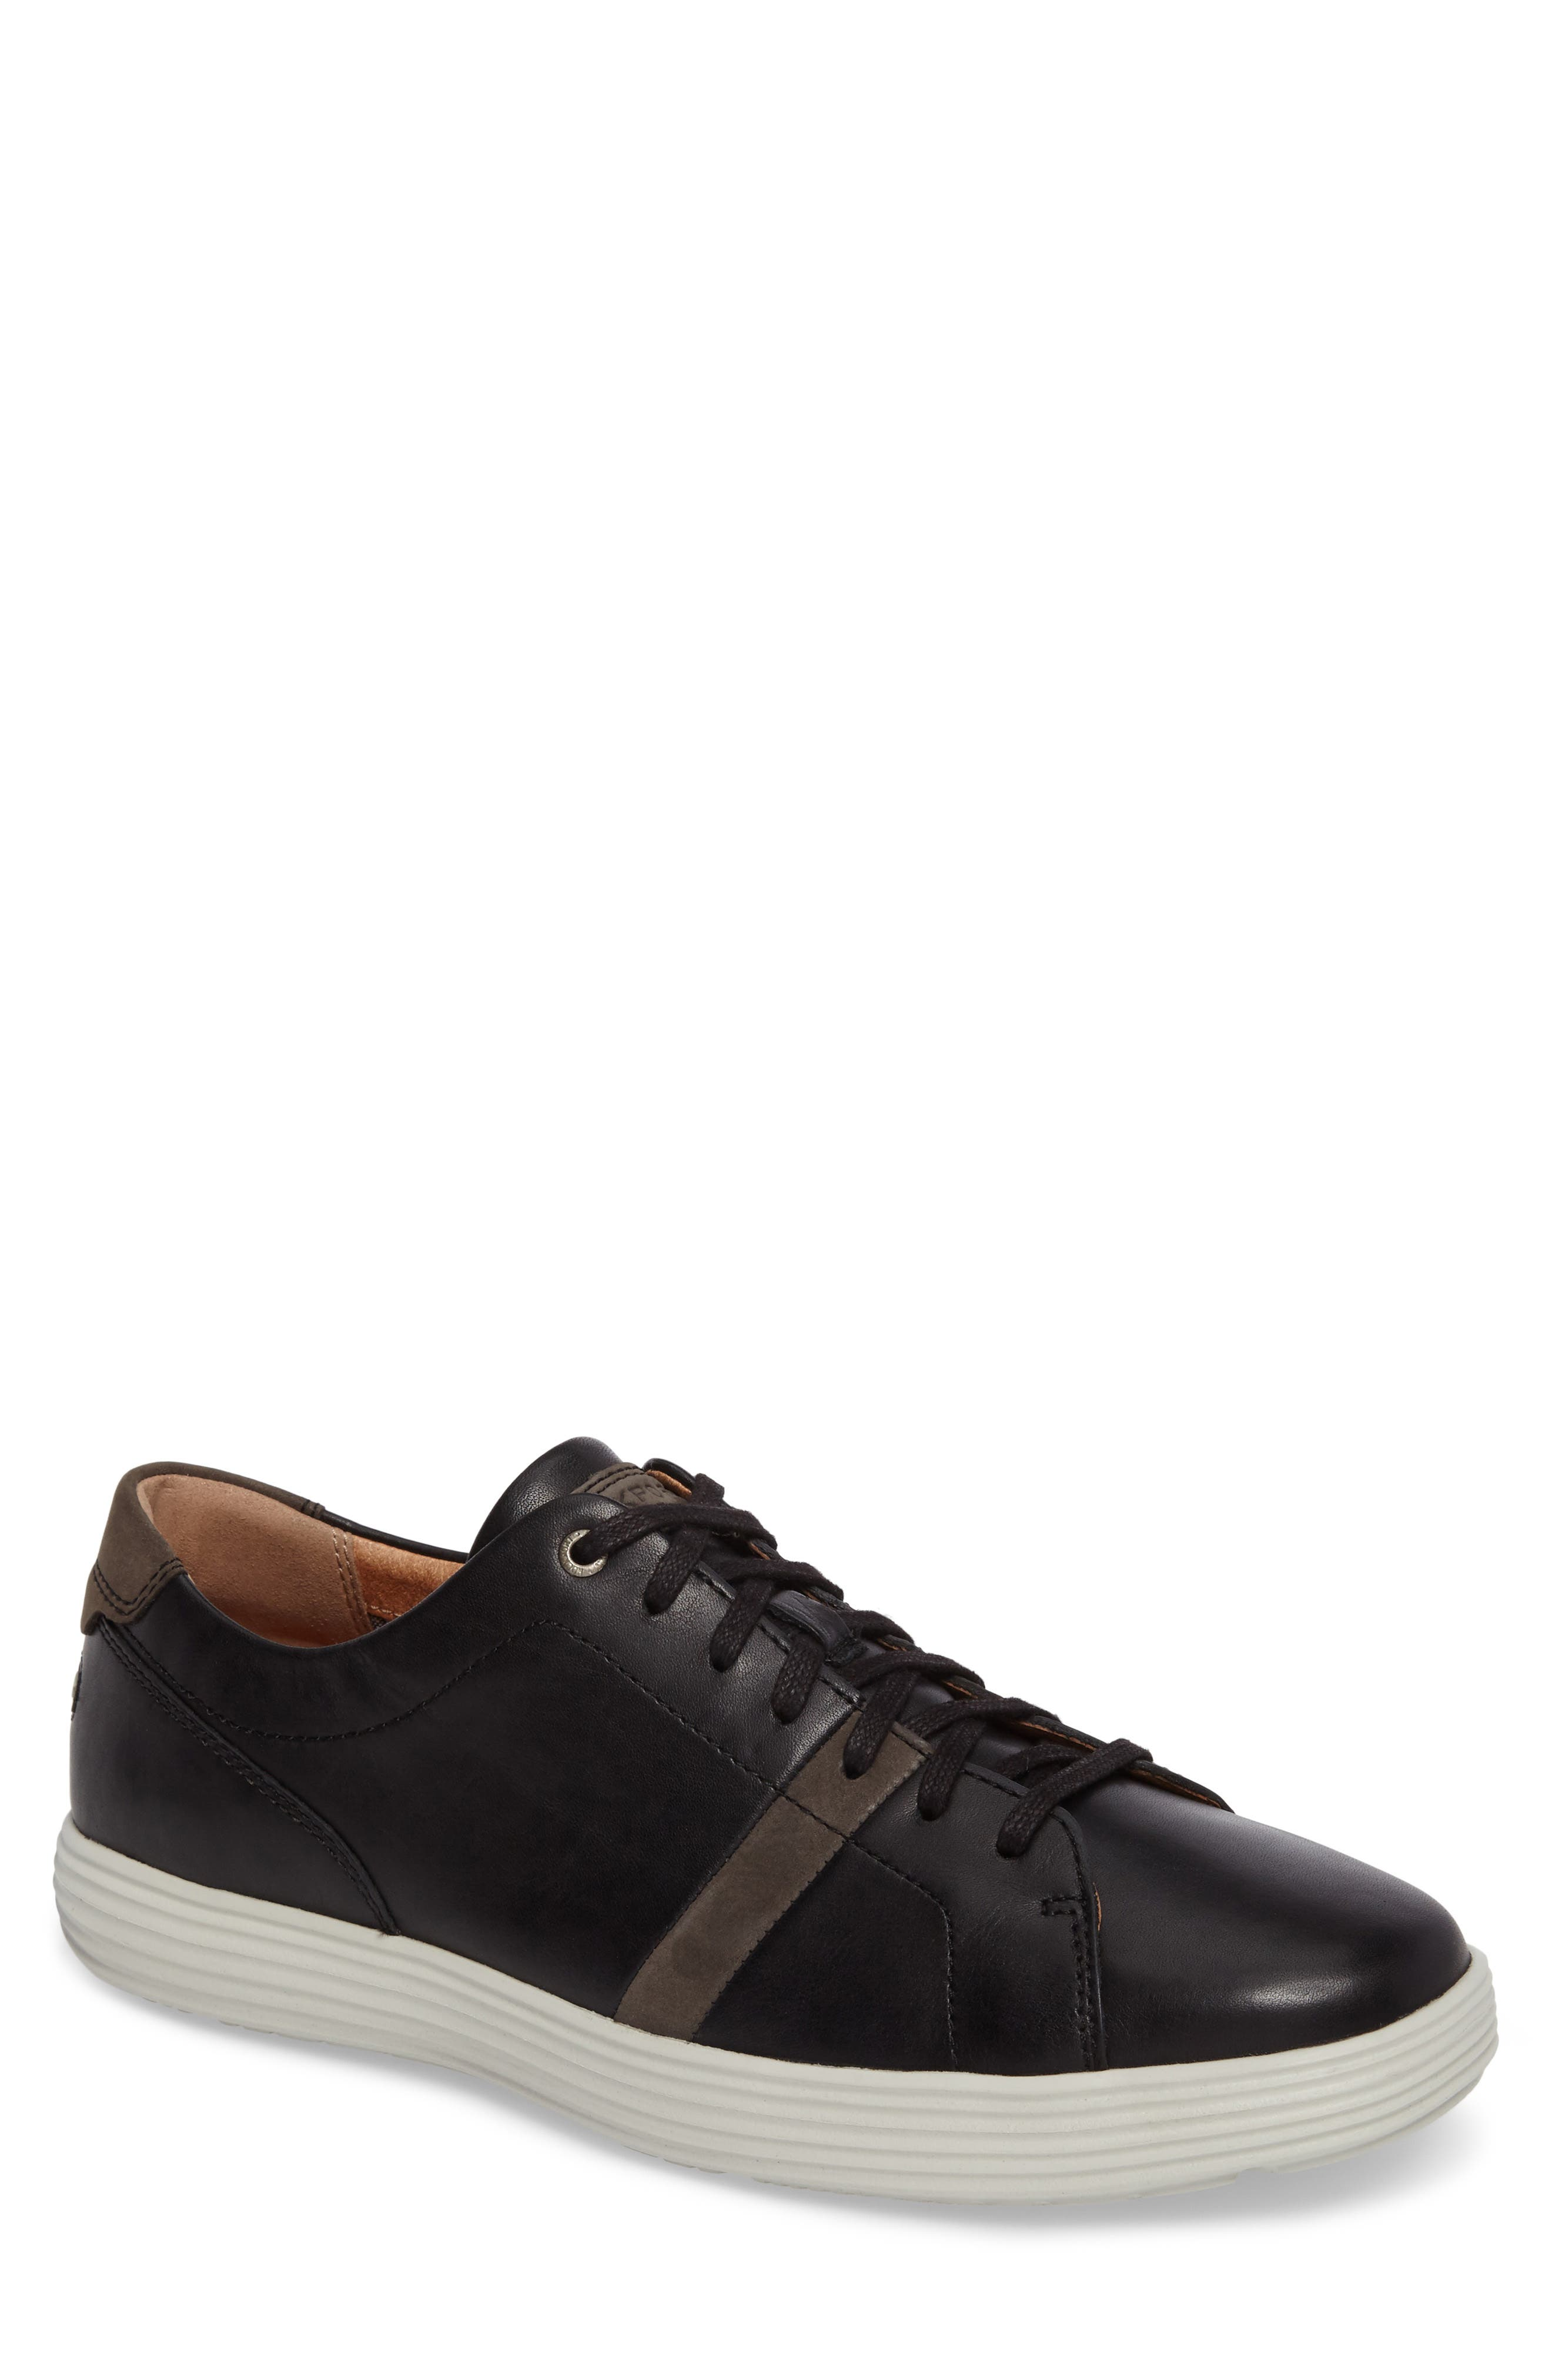 Thurston Sneaker,                         Main,                         color,